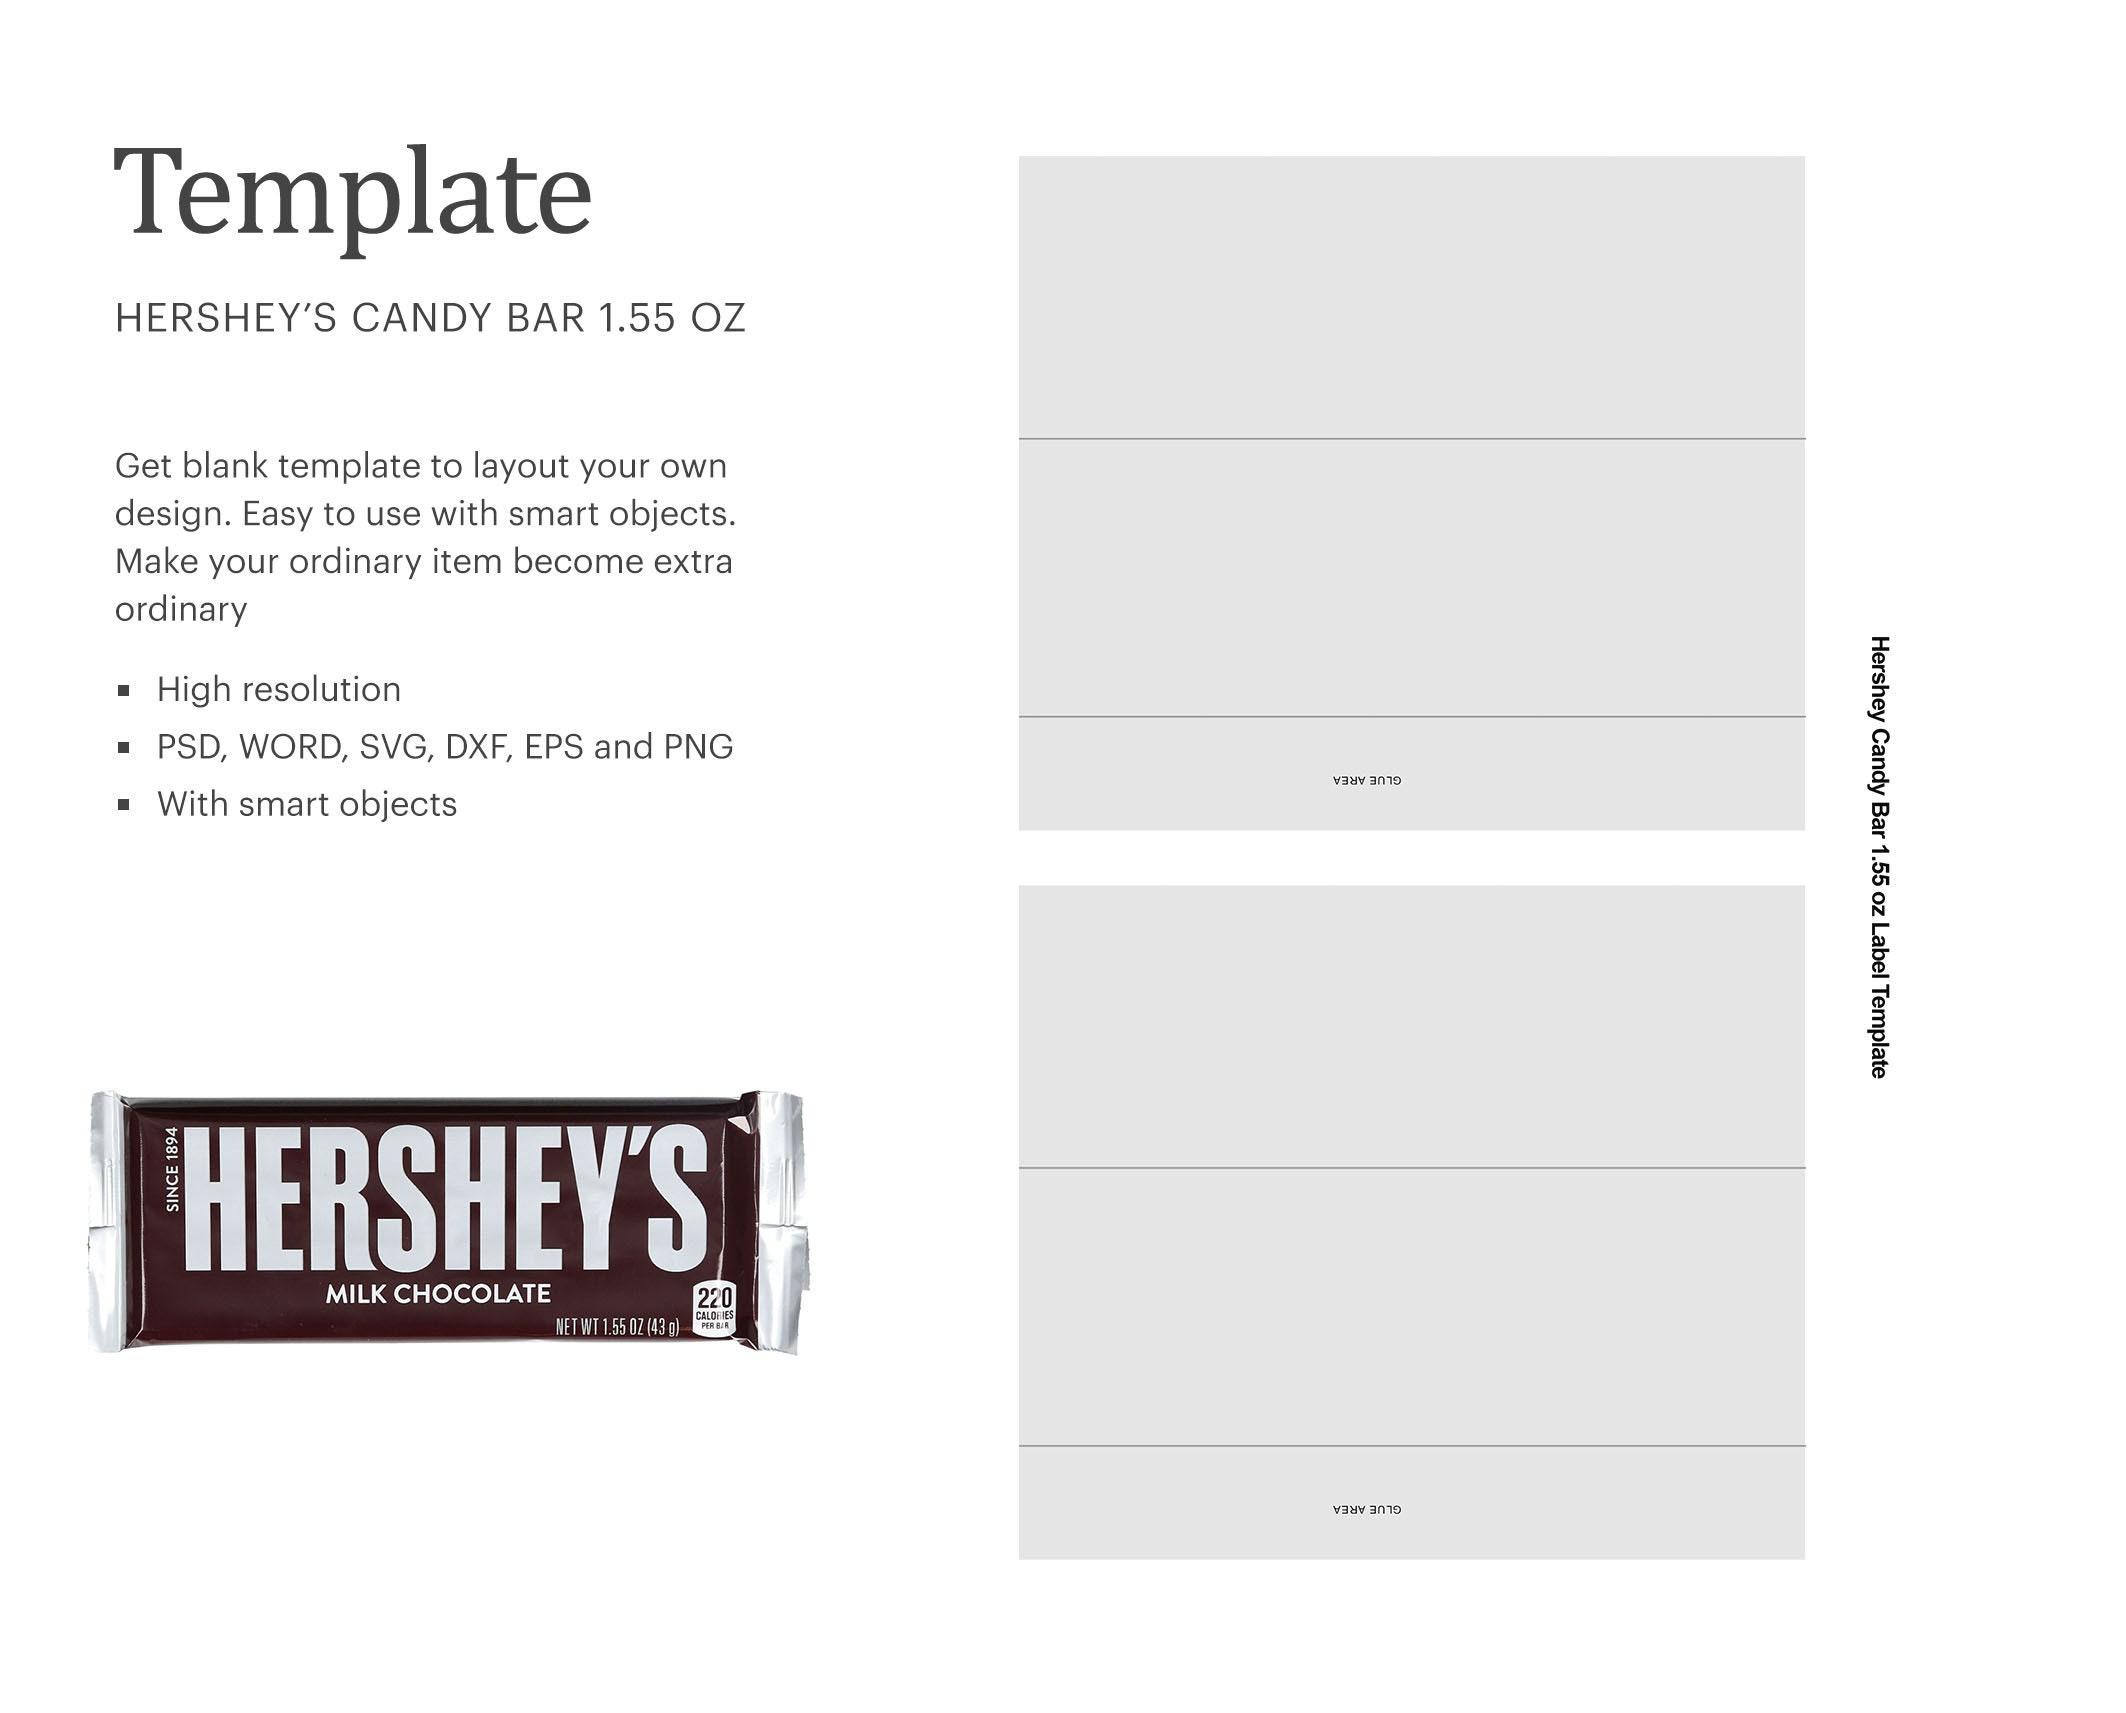 Chocolate Milk Bar 21.21 oz Blank Wrapper Template Party Favor  Etsy With Blank Candy Bar Wrapper Template